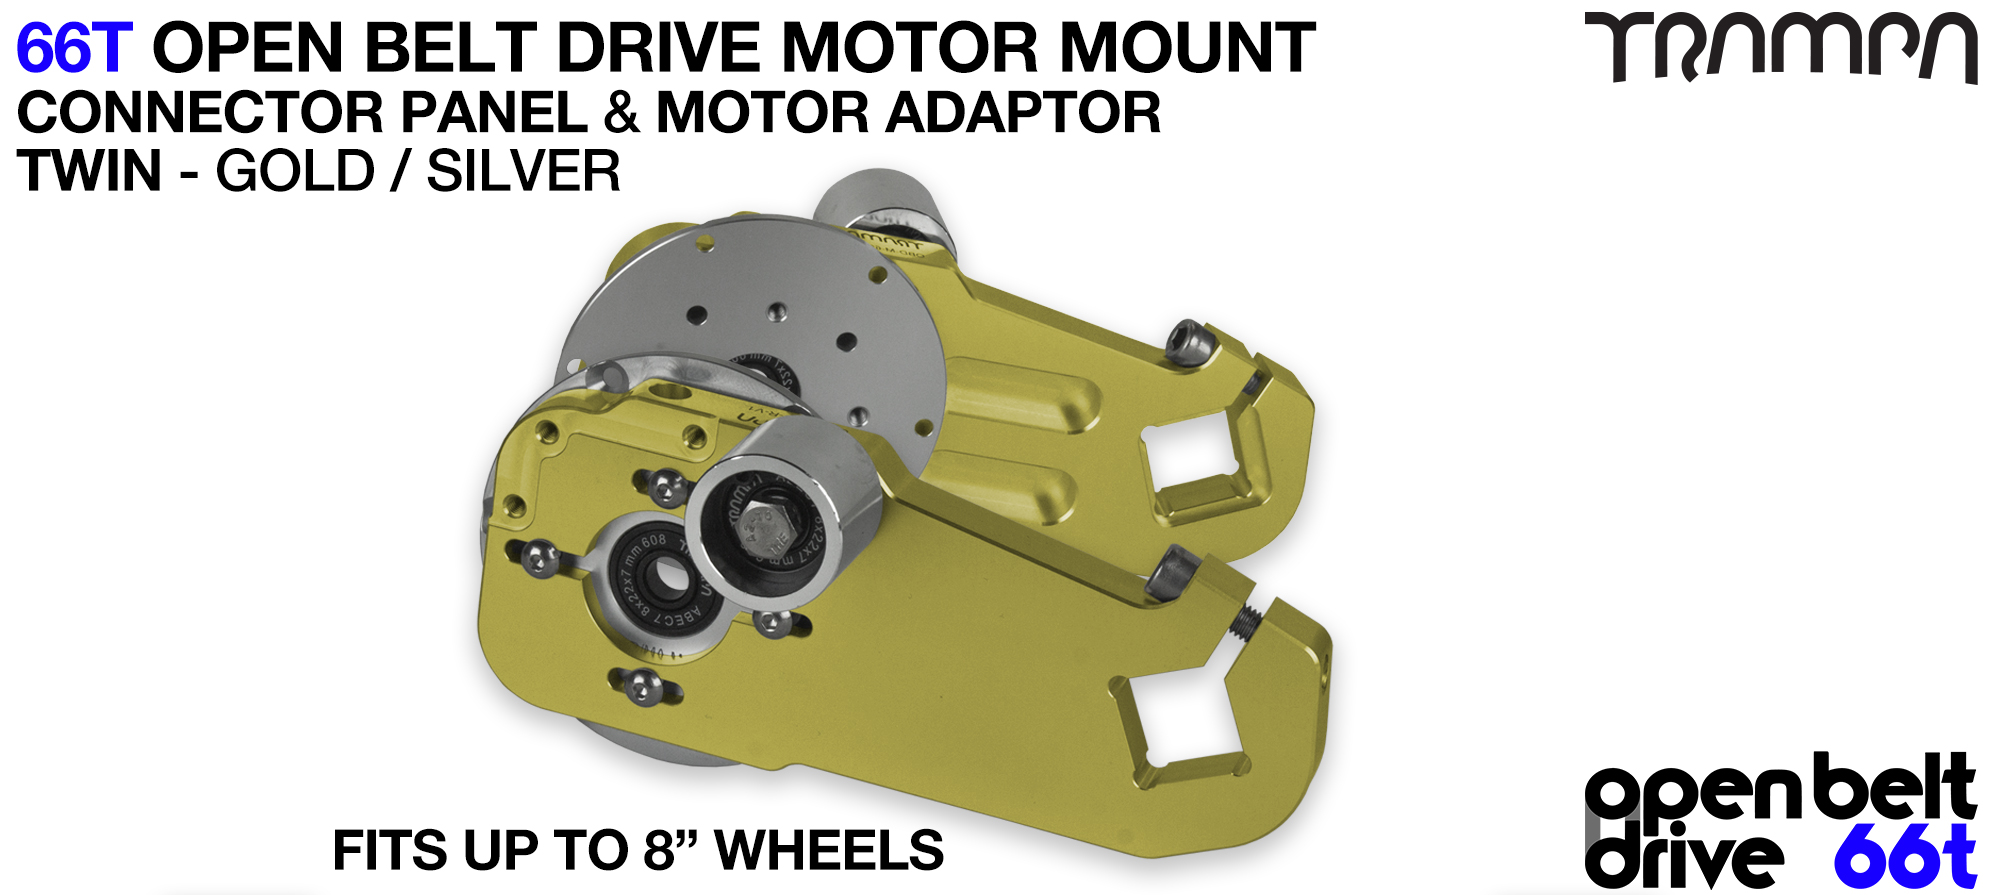 66T OPEN BELT DRIVE Motor Mount & Motor Adaptor - TWIN GOLD